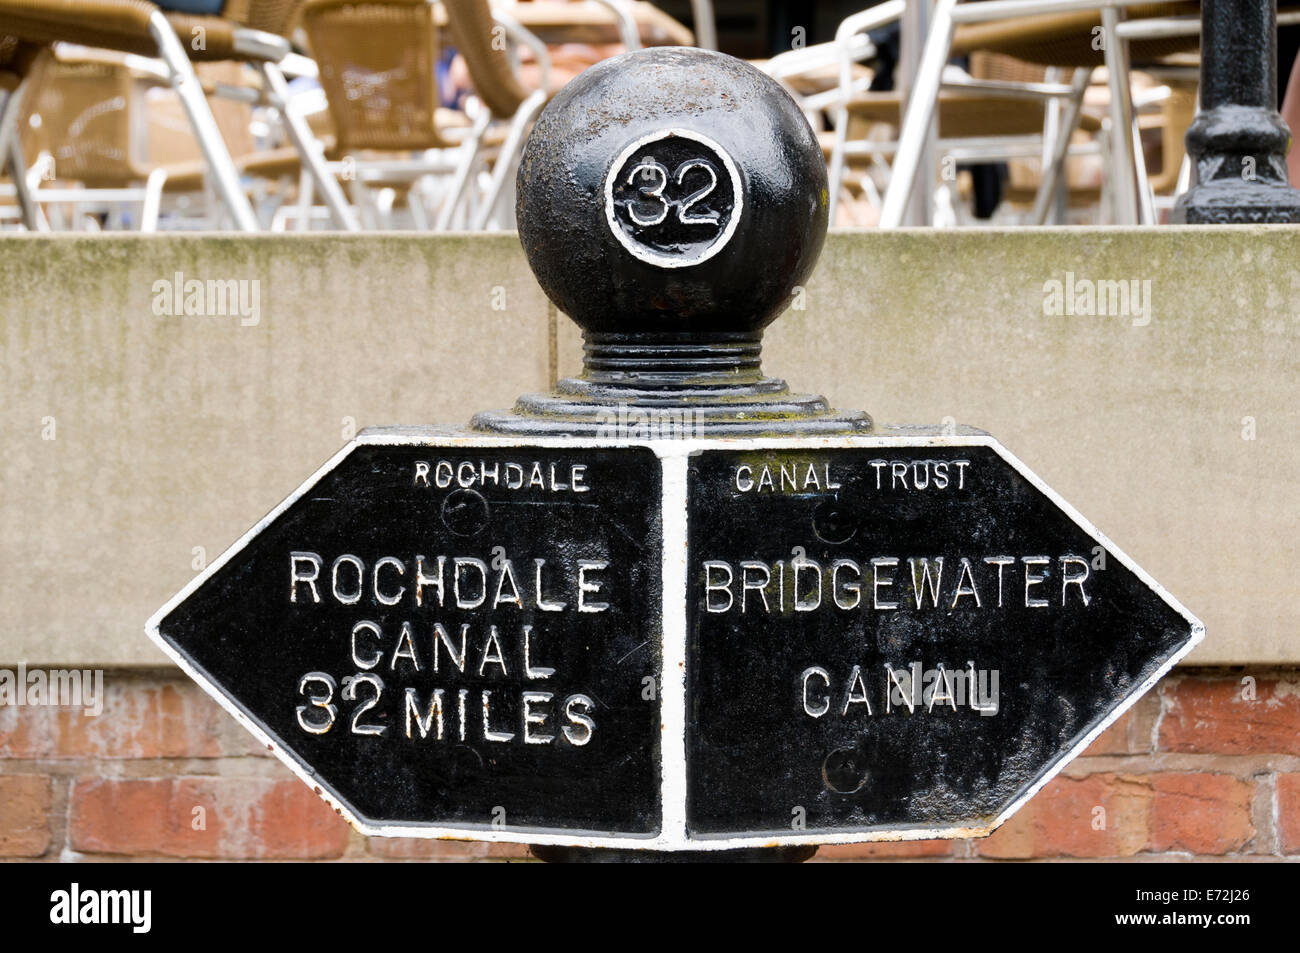 Sign at the junction of the Rochdale and Bridgewater canals, Castlefield, Manchester, England, UK. - Stock Image